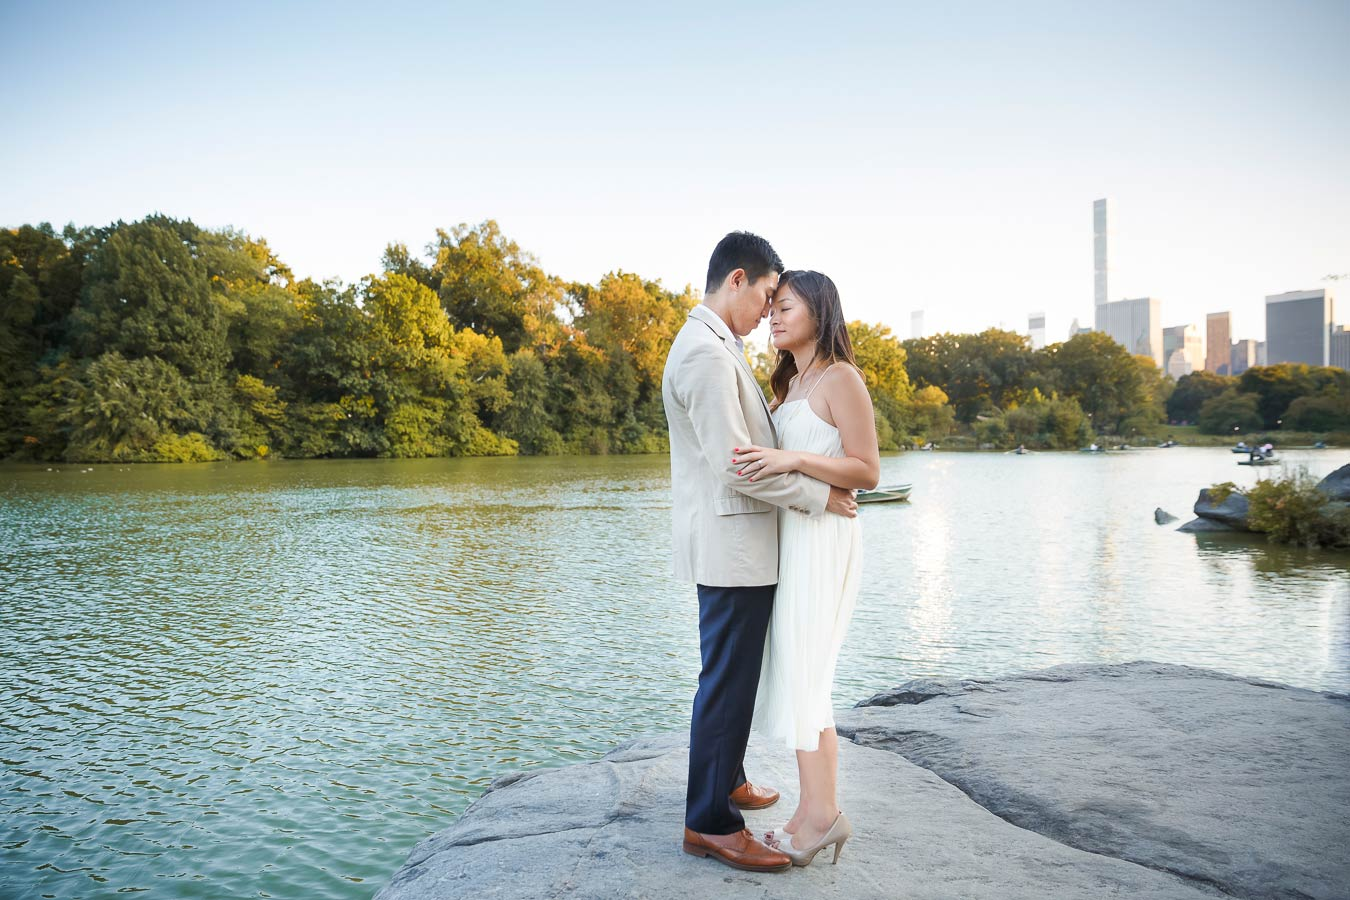 central-park-nyc-engagement-photographer-best0051.jpg